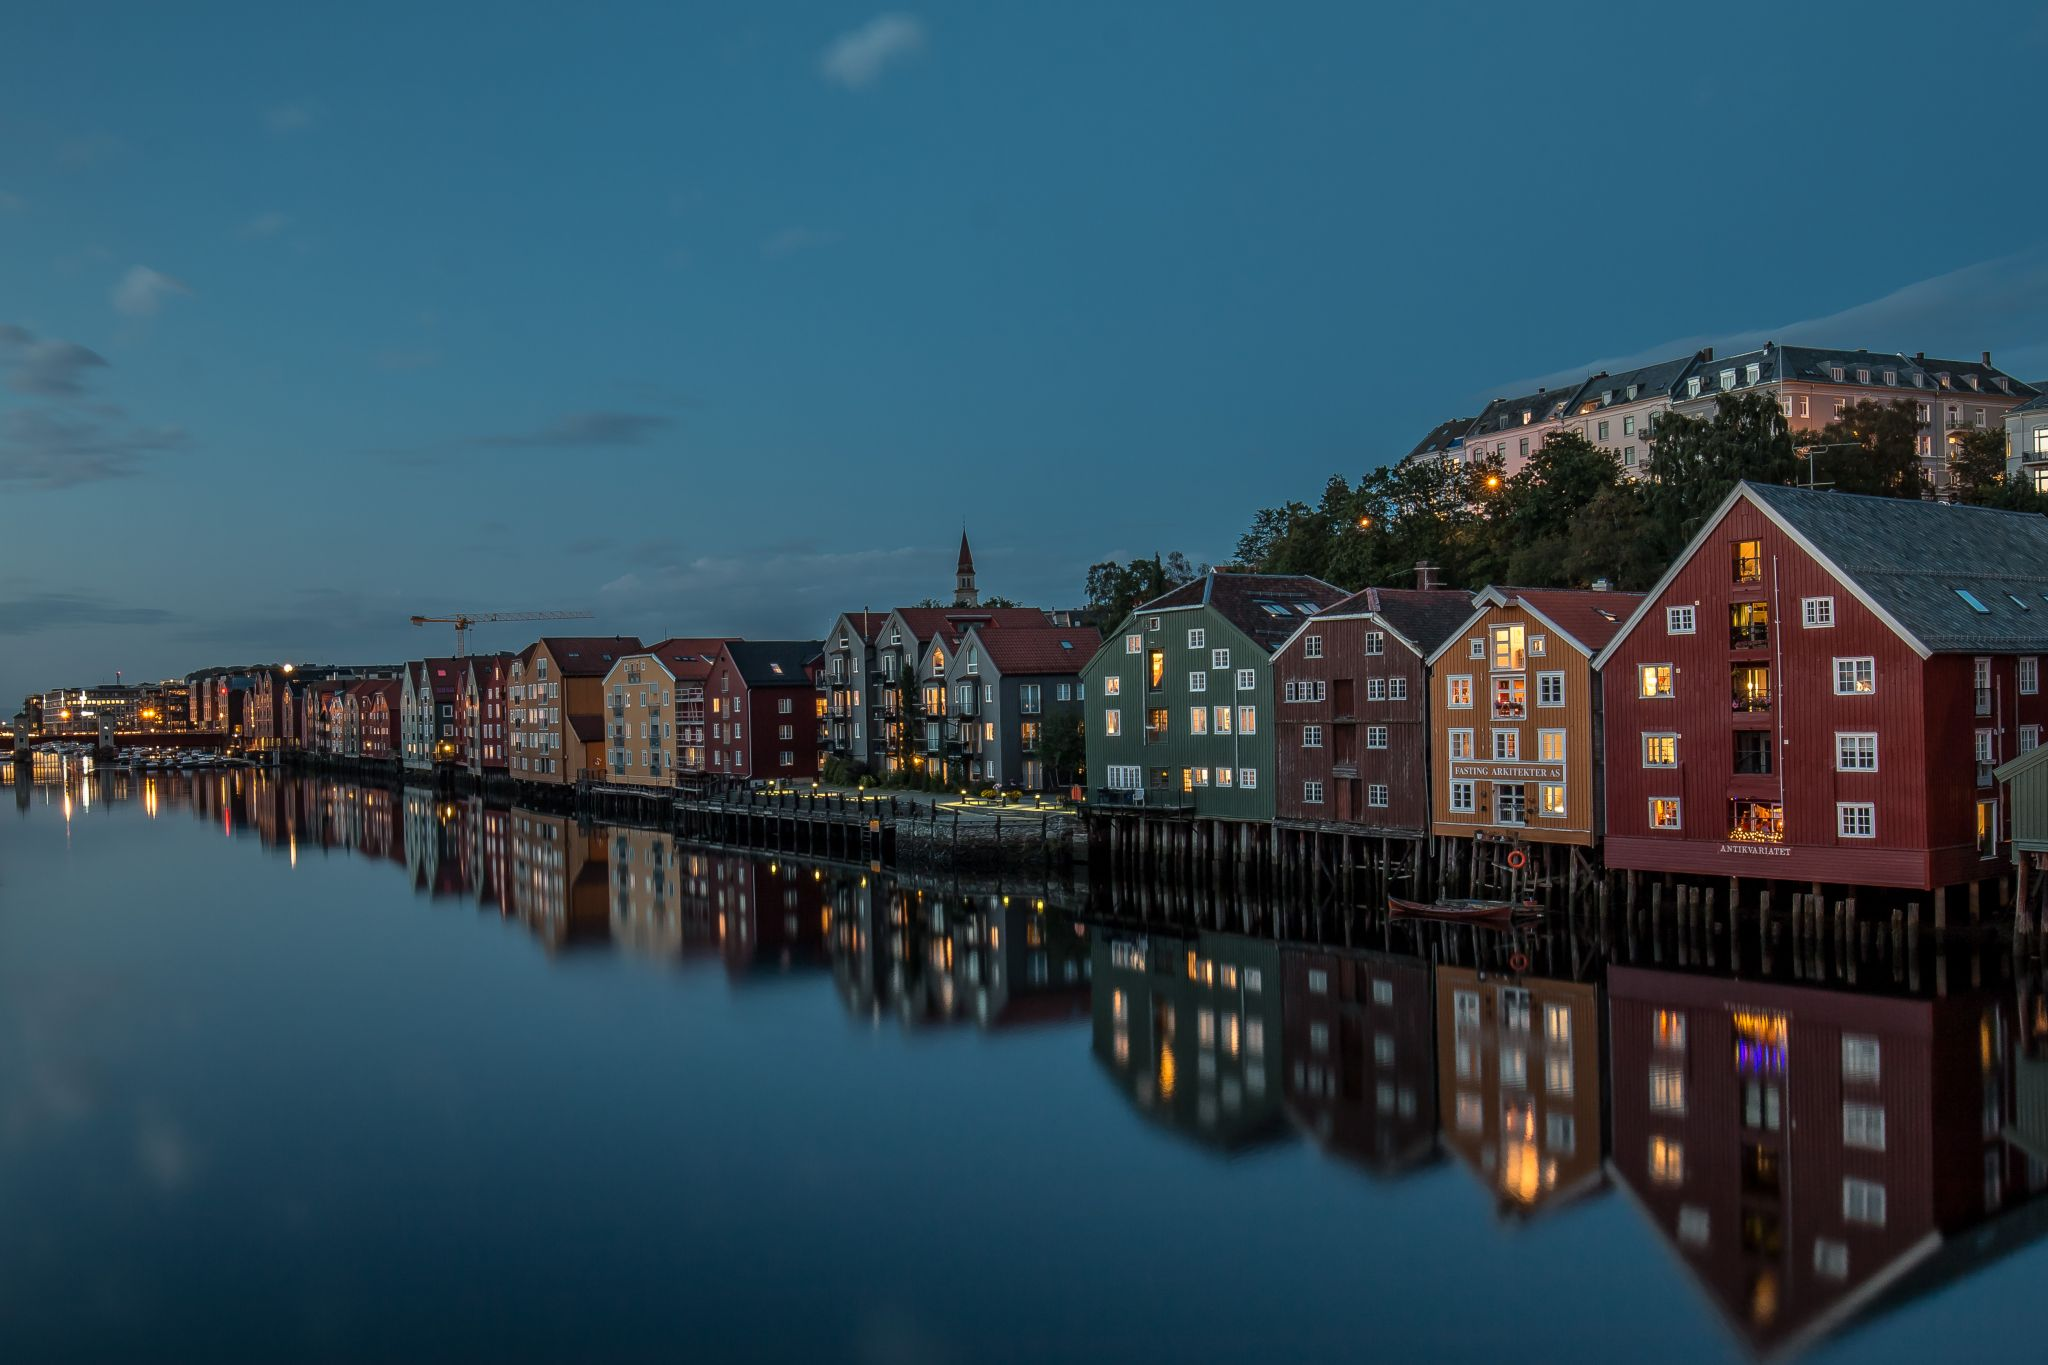 Reflections of Trondheim, Norway